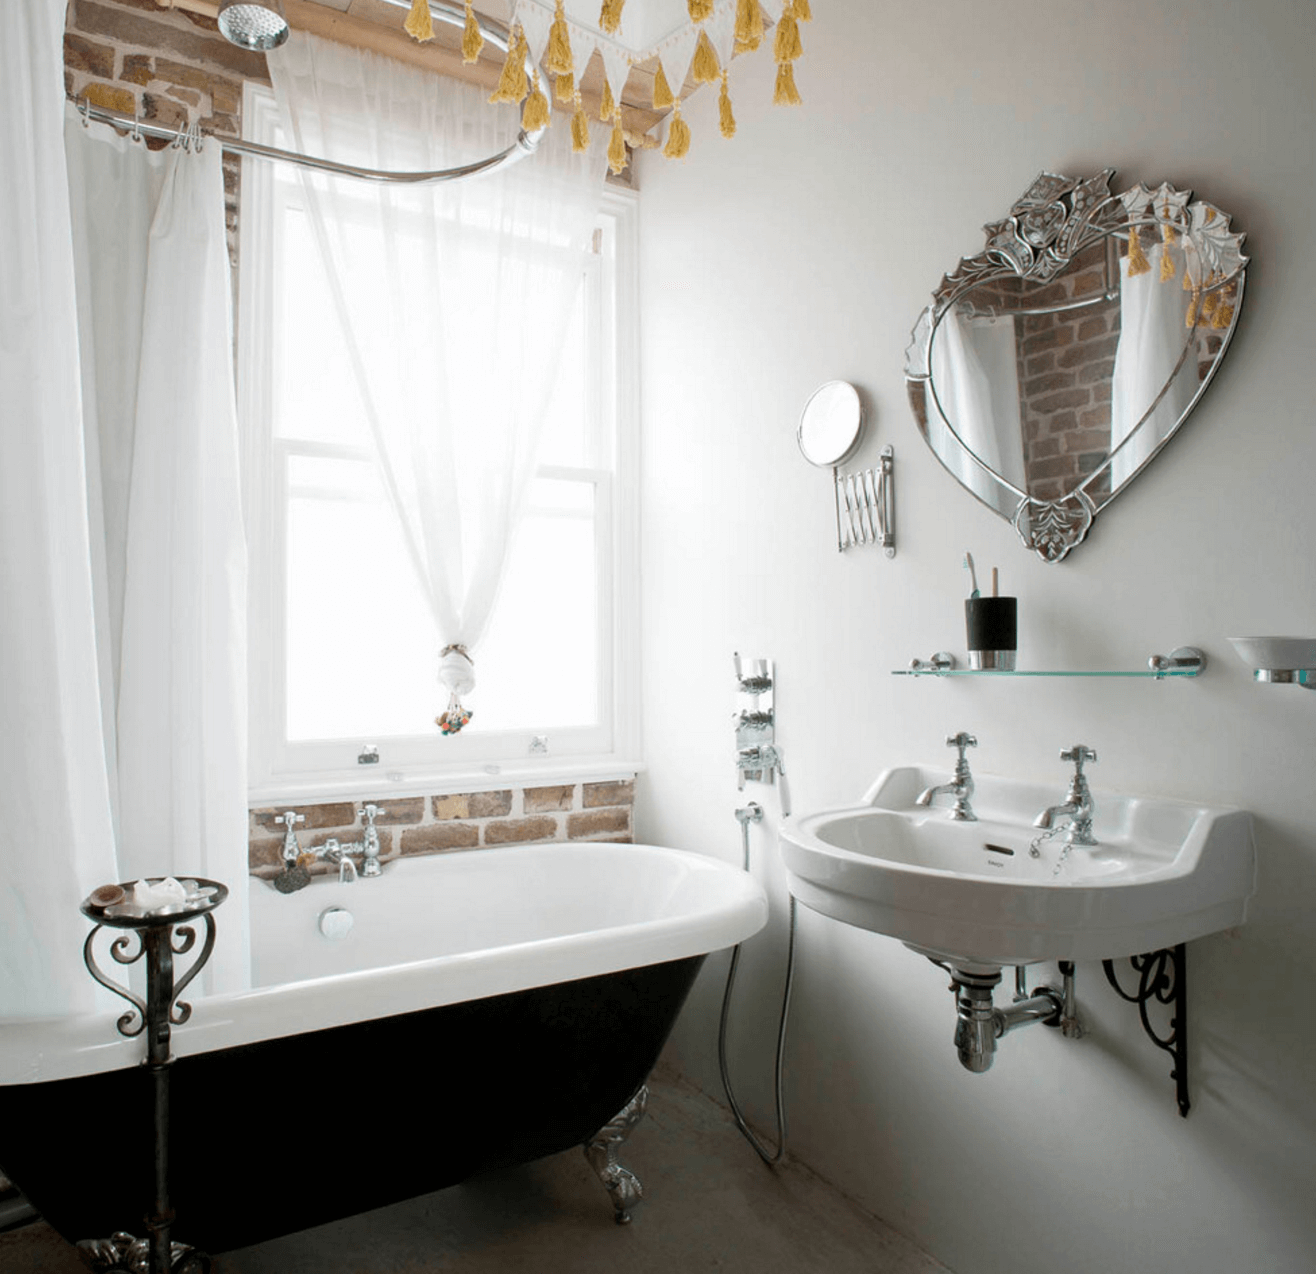 3b1fd9561f 38 Bathroom Mirror Ideas to Reflect Your Style - Freshome